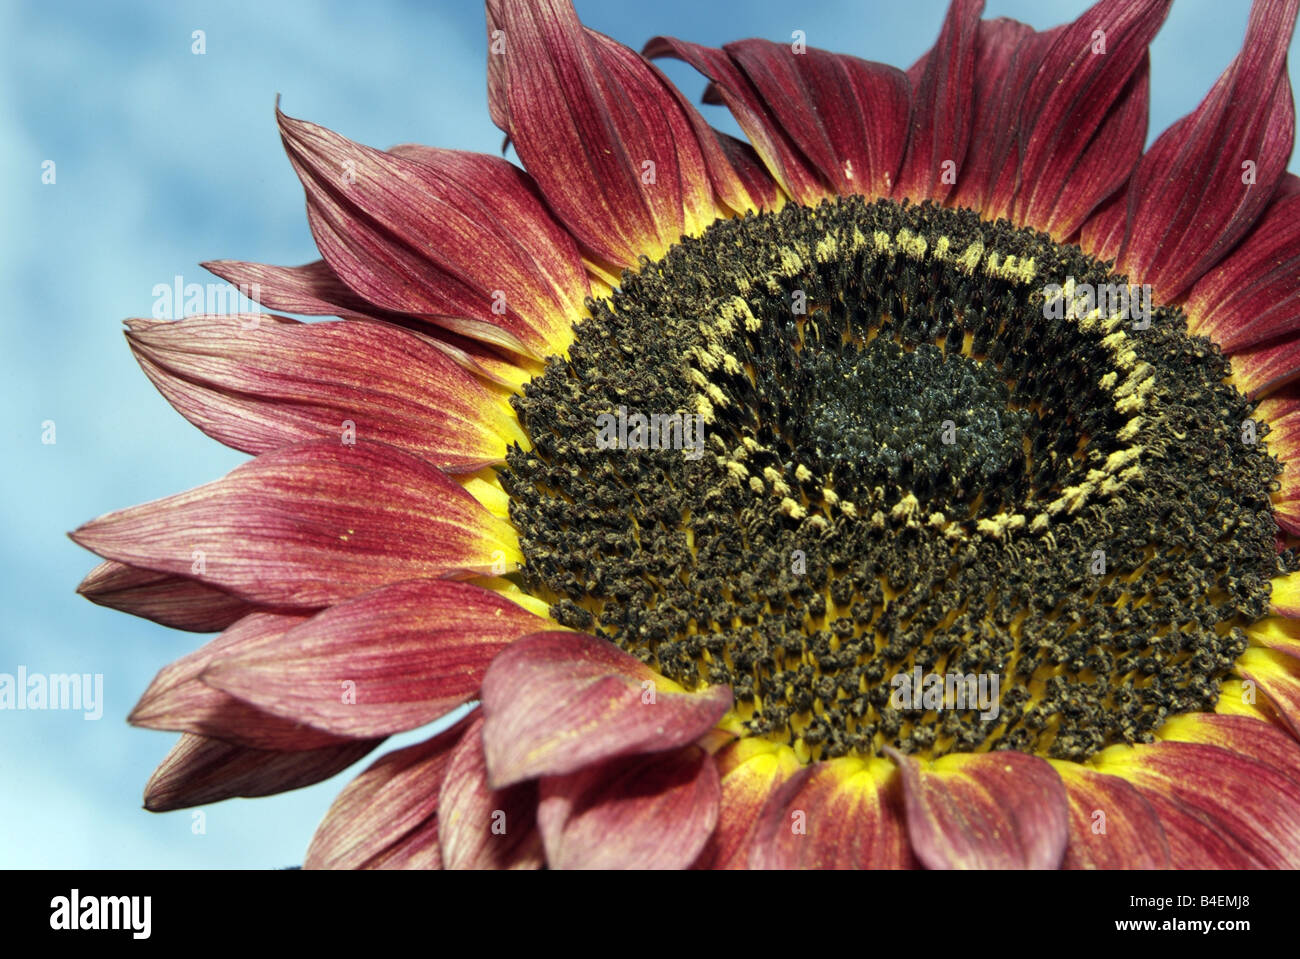 Red Sunflower - Stock Image